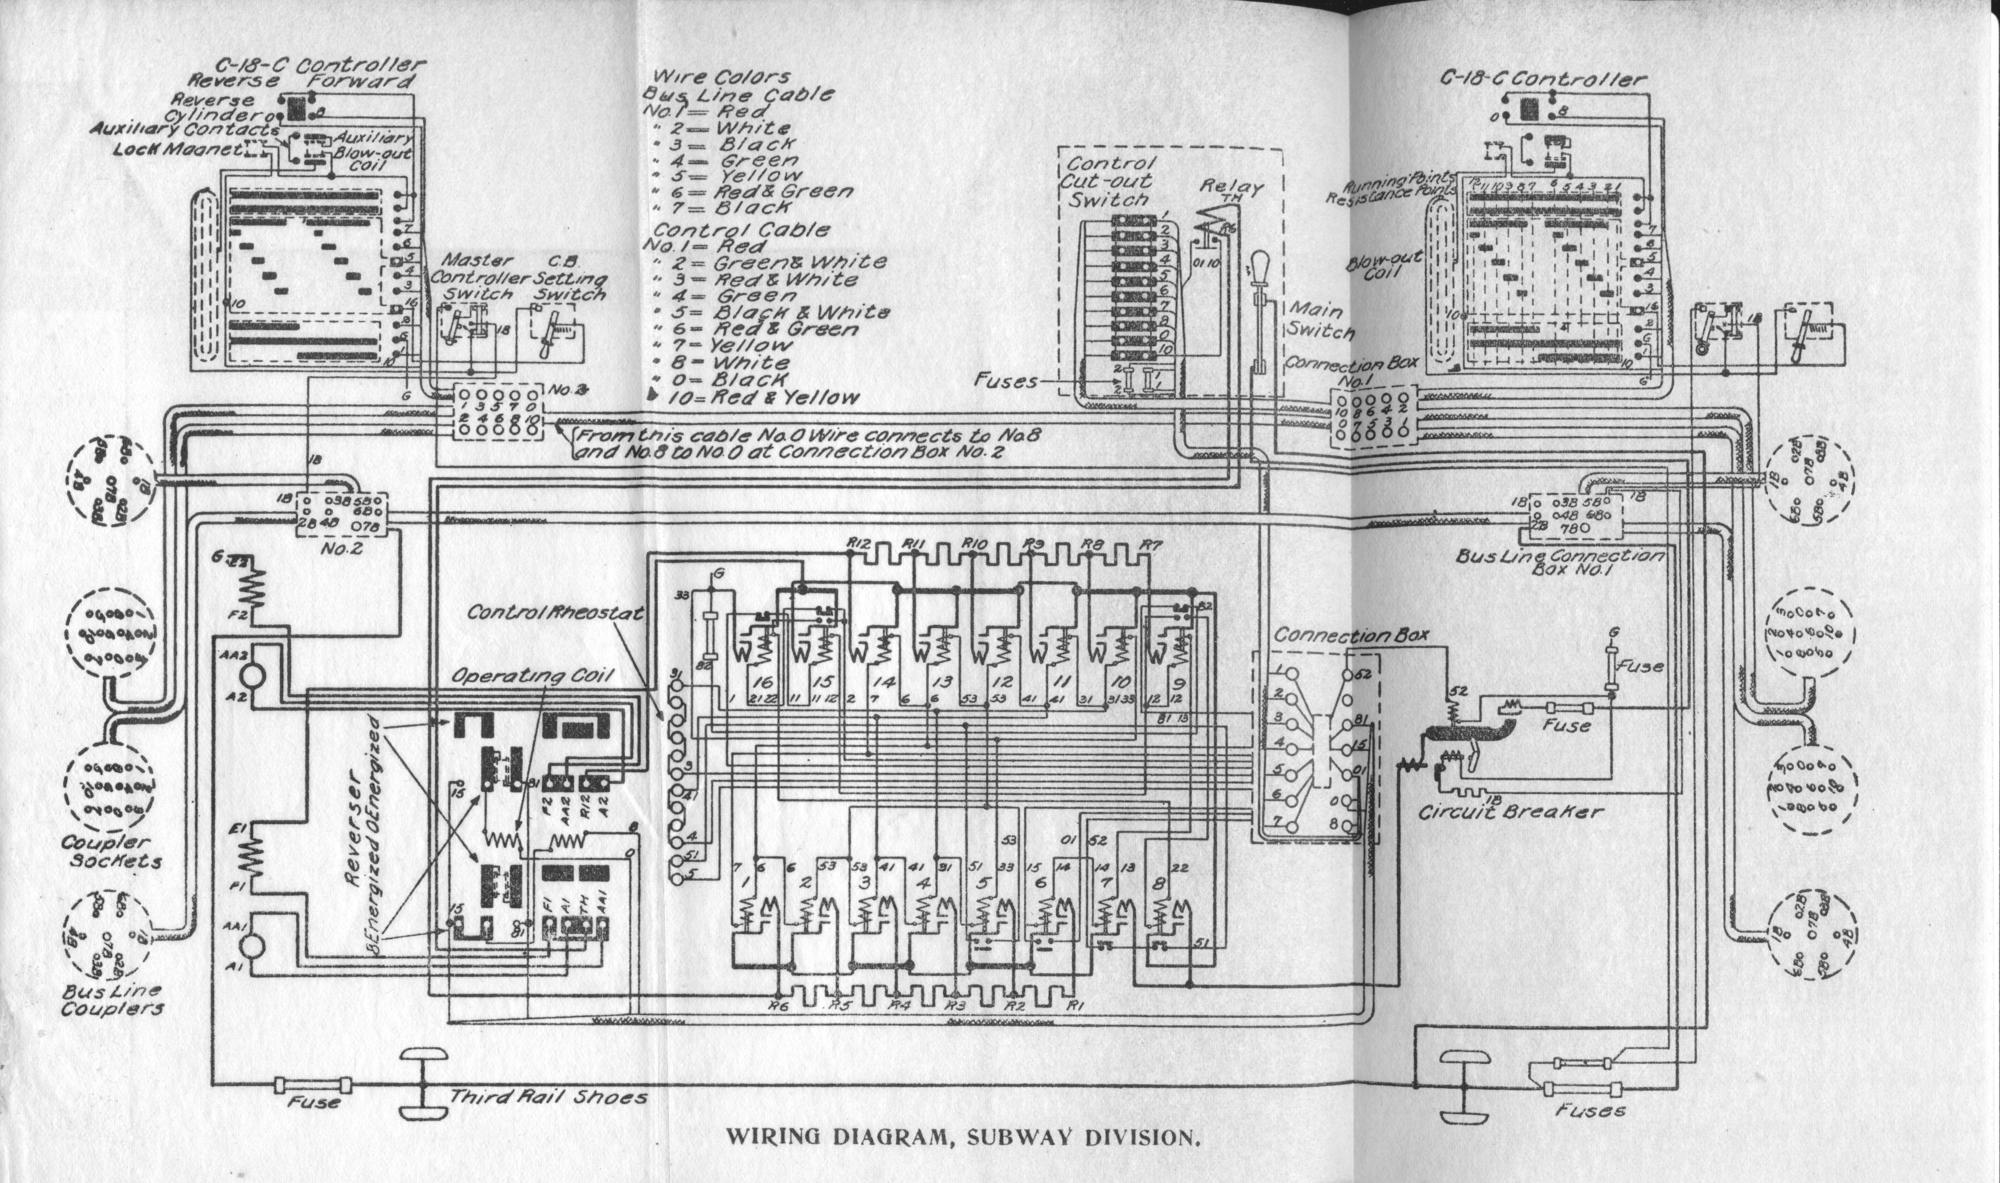 (click to enlarge). WIRING DIAGRAM, SUBWAY DIVISION.